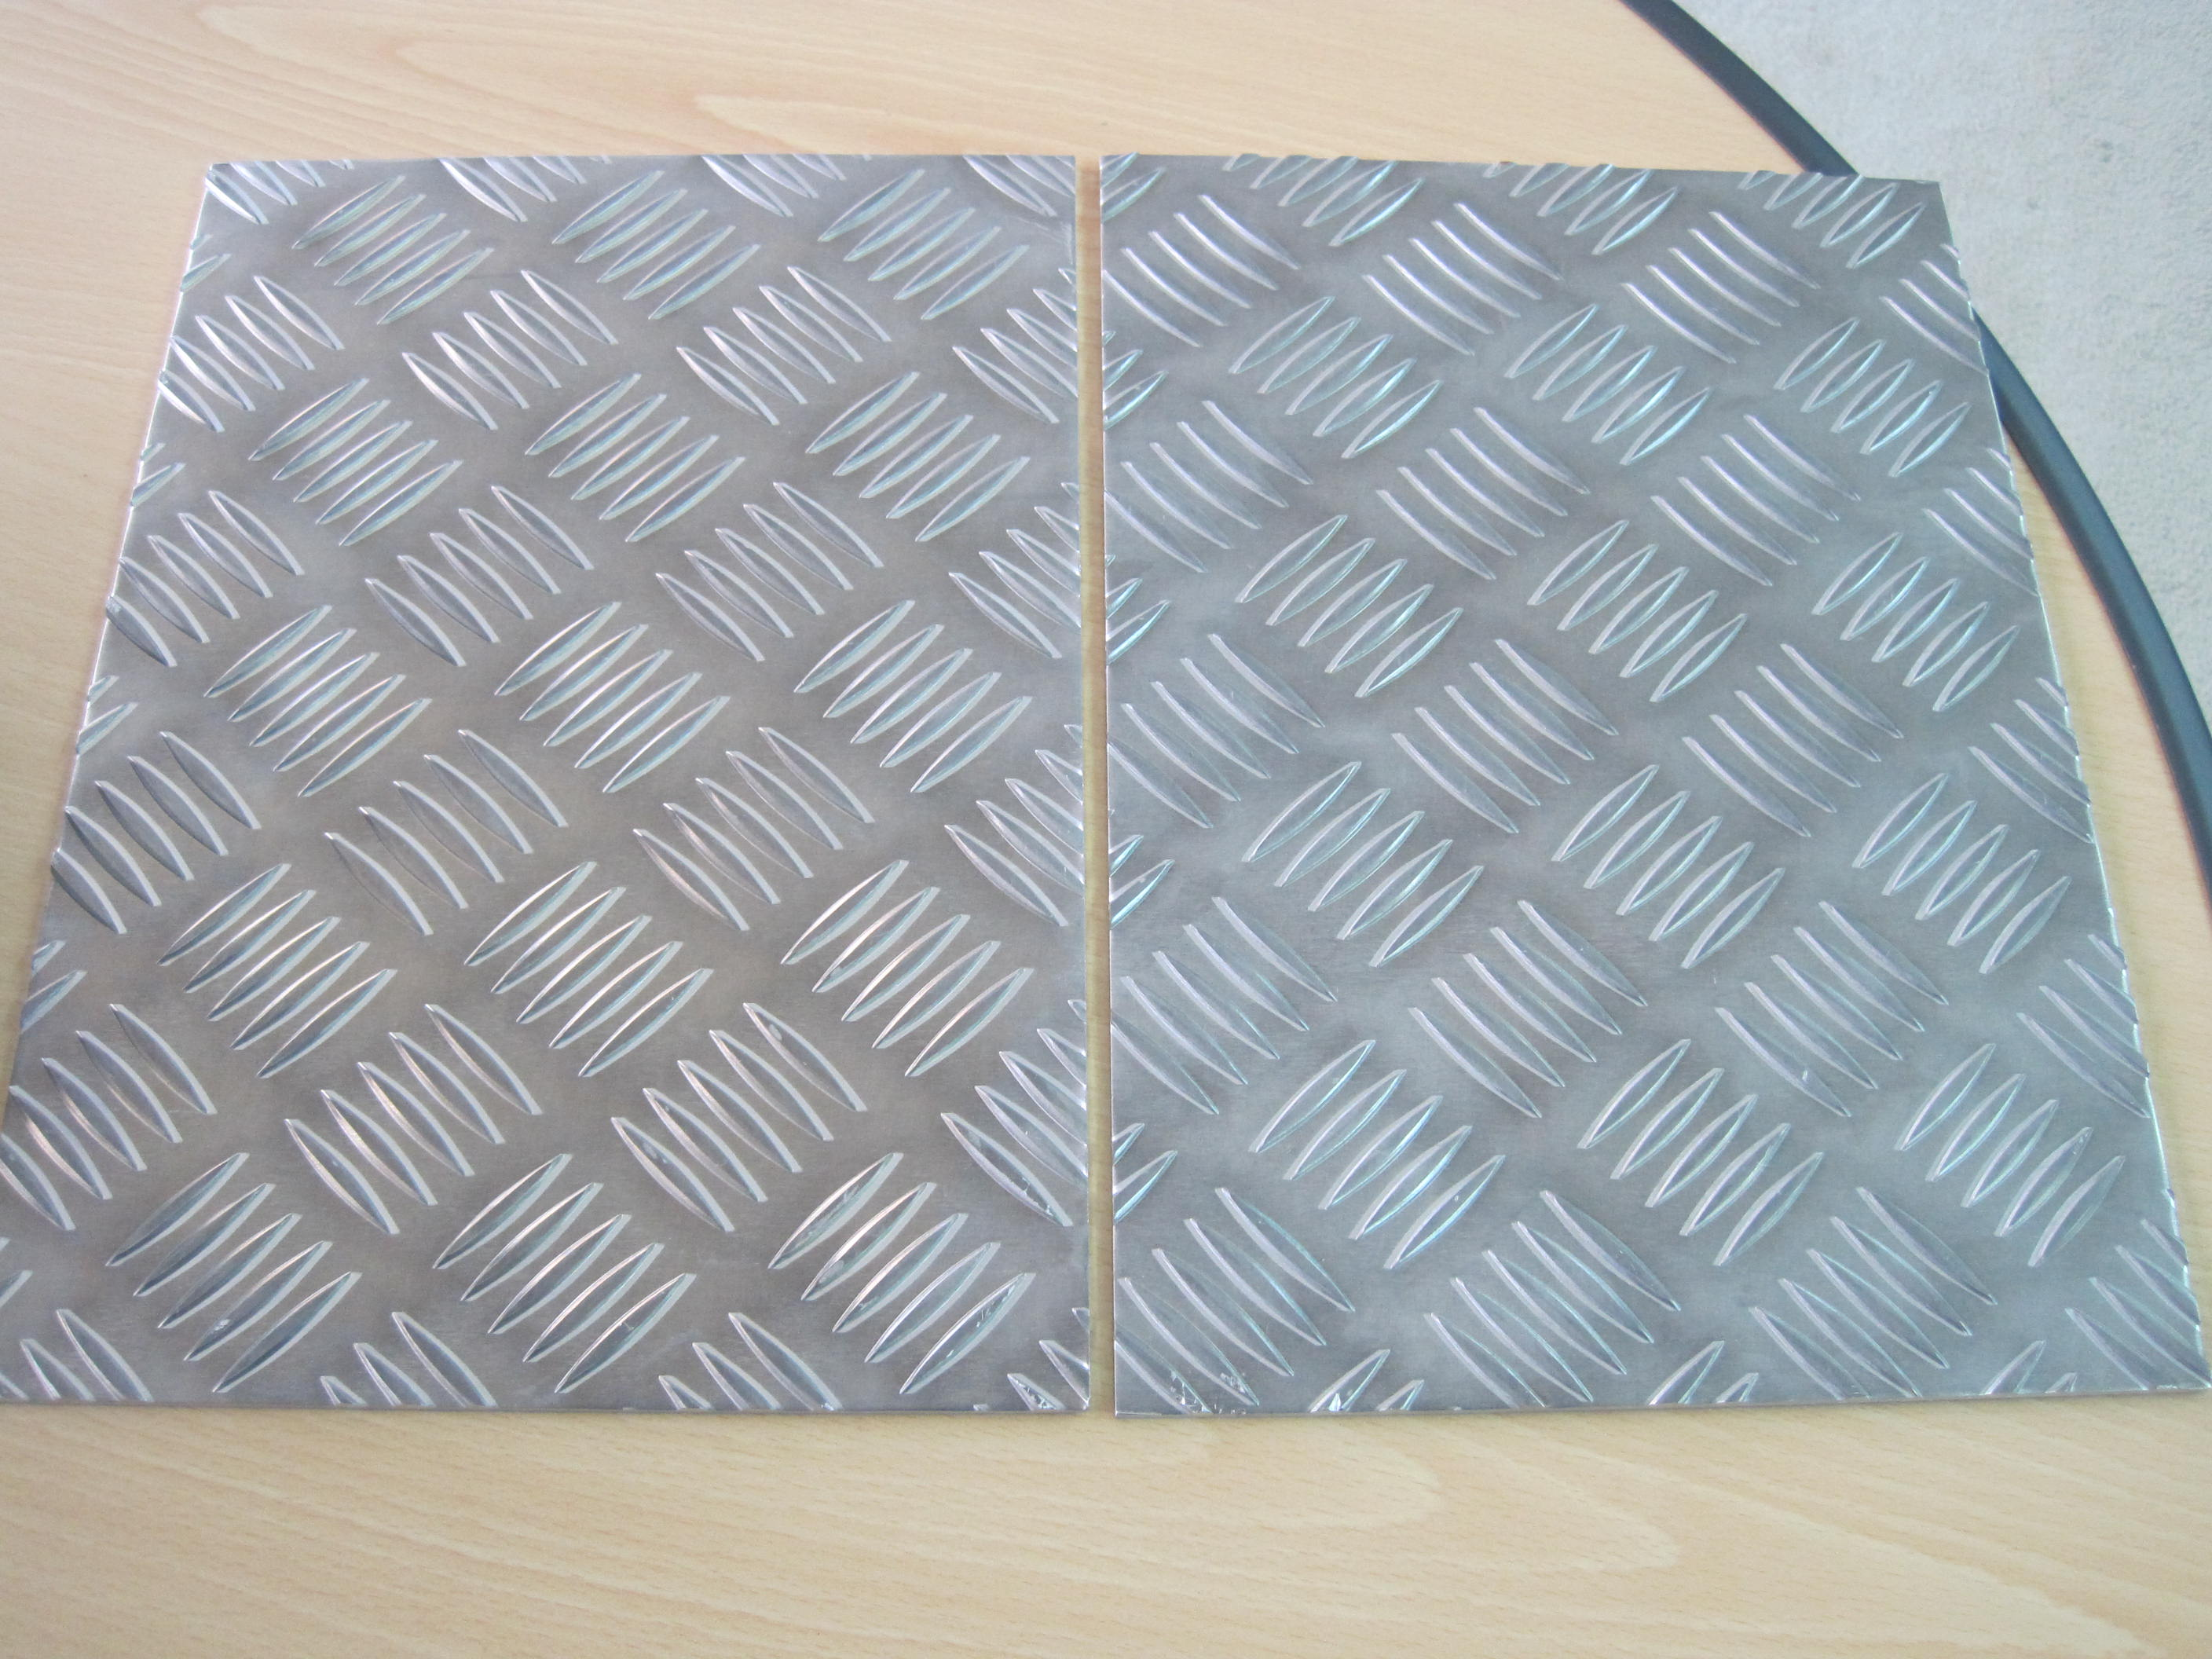 5-bar Aluminum Tread Plate